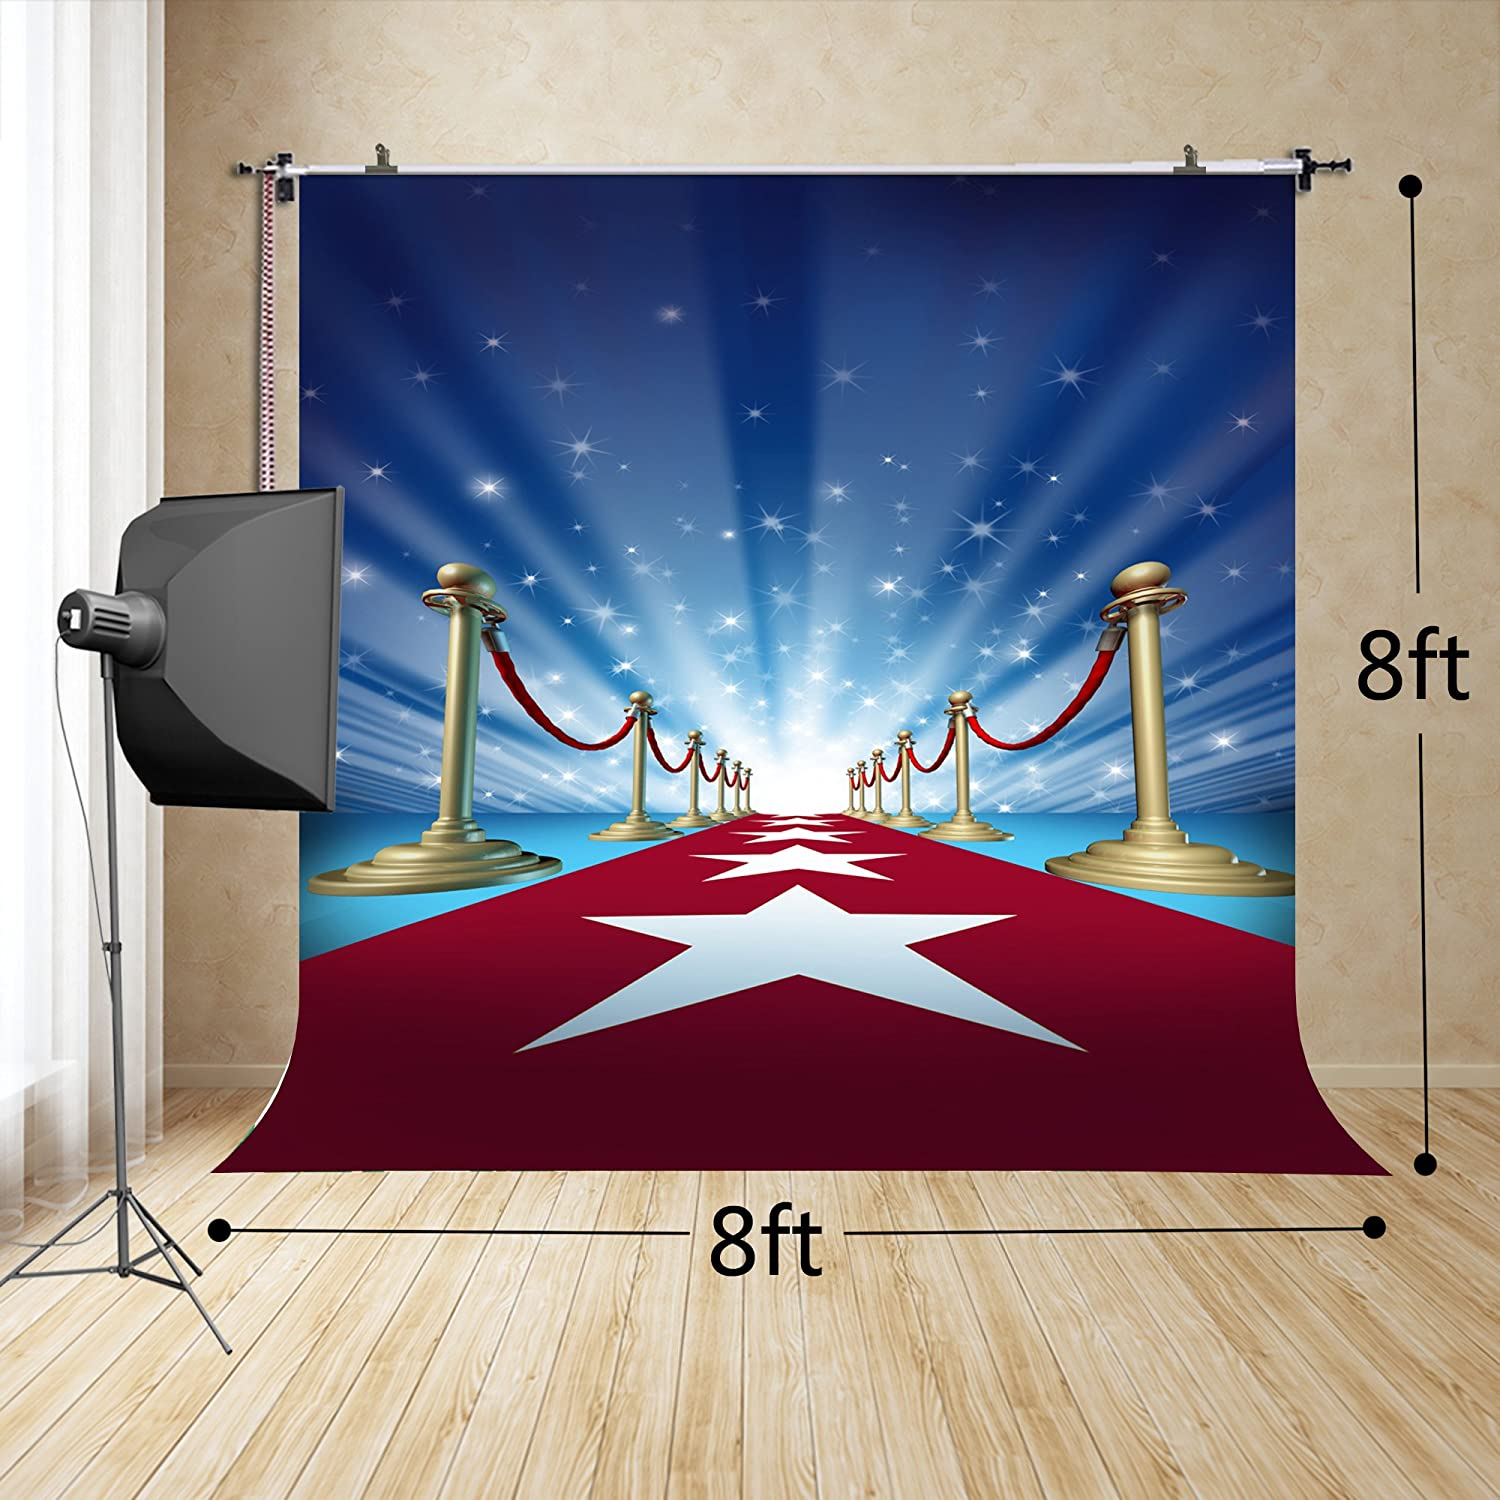 250x250cm Soccer cosplay photography props brilliant football field photography background FT-3543 FiVan-Us 8x8ft